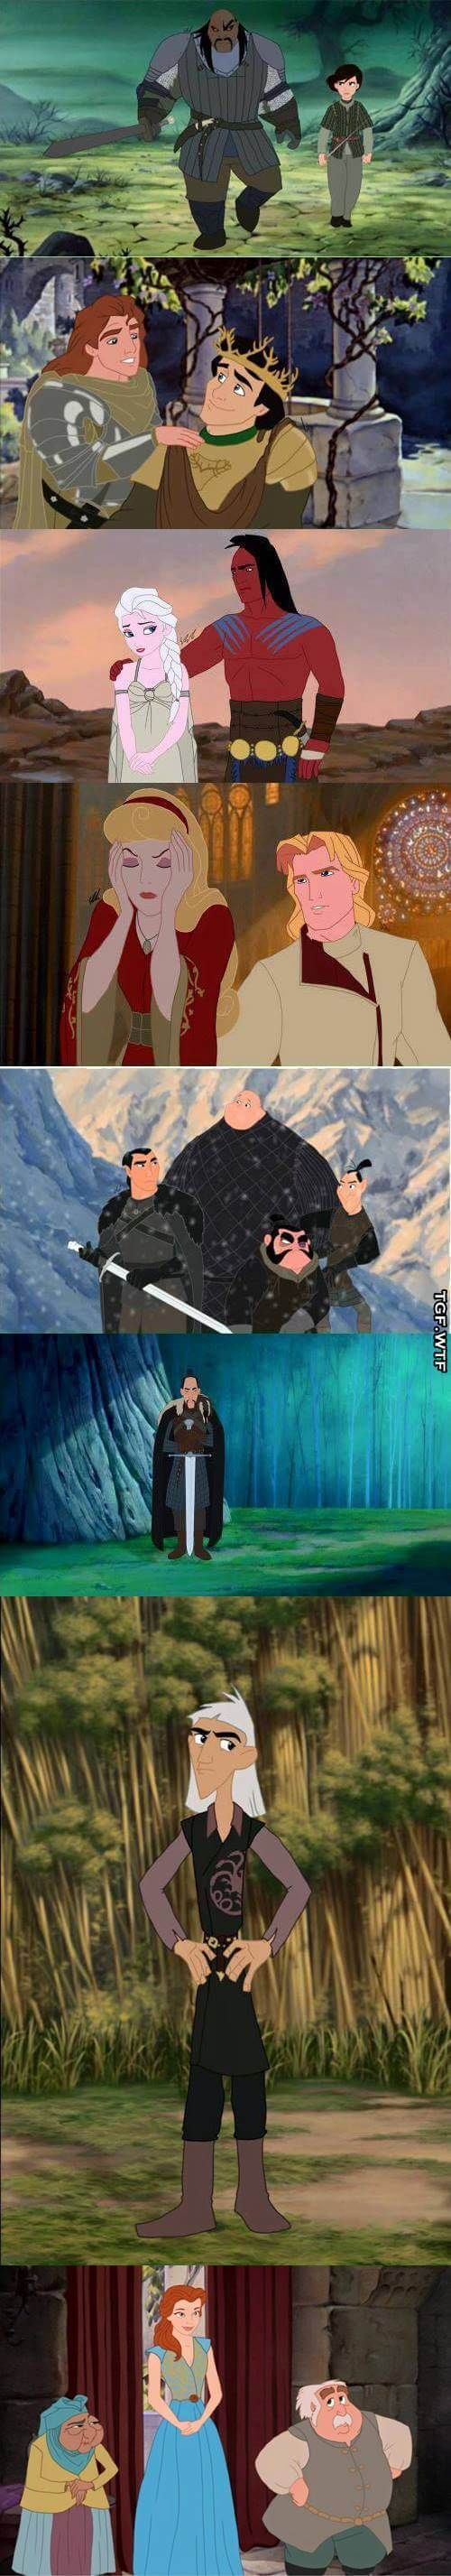 disney characters as got characters